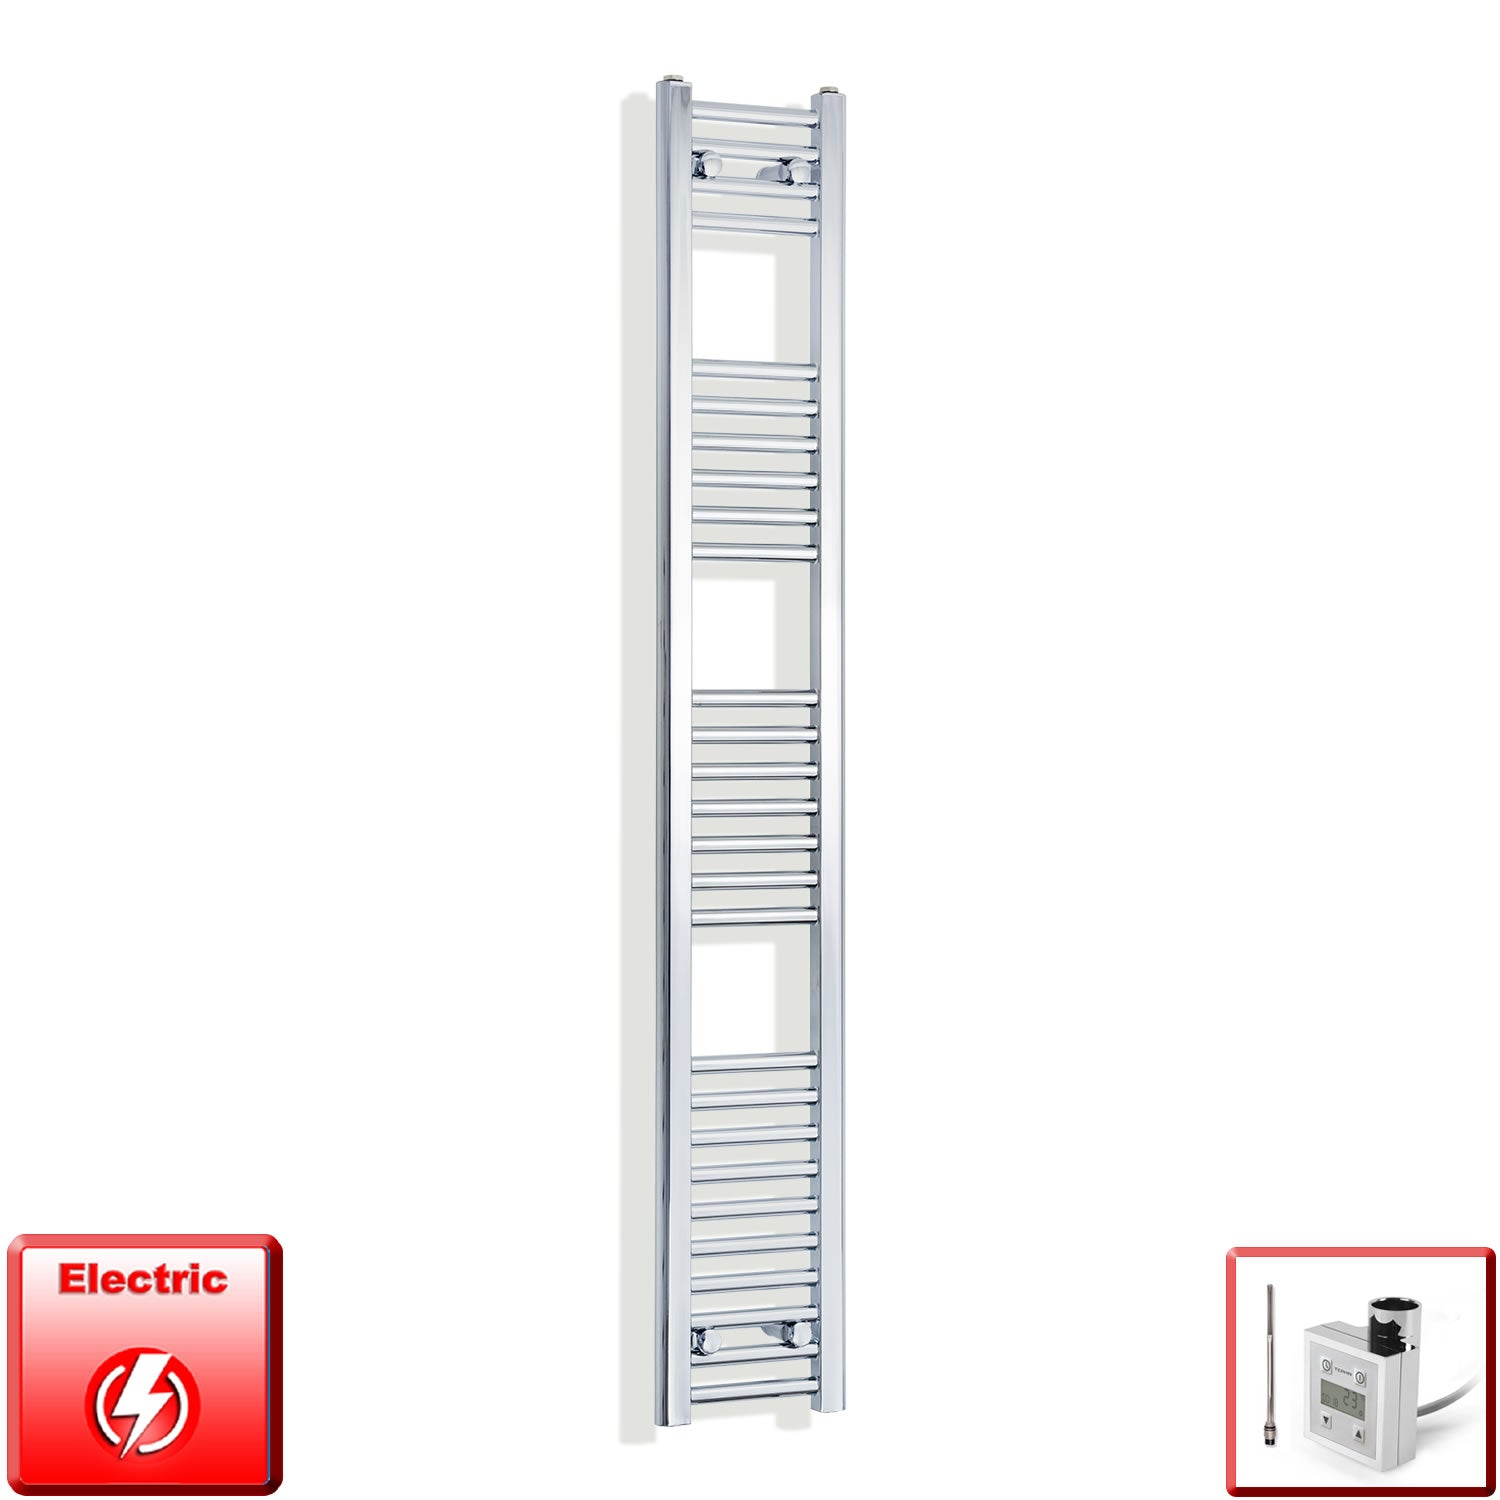 200mm Wide 1600mm High Flat Chrome Pre-Filled Electric Heated Towel Rail Radiator HTR,KTX-3 Thermostatic Element